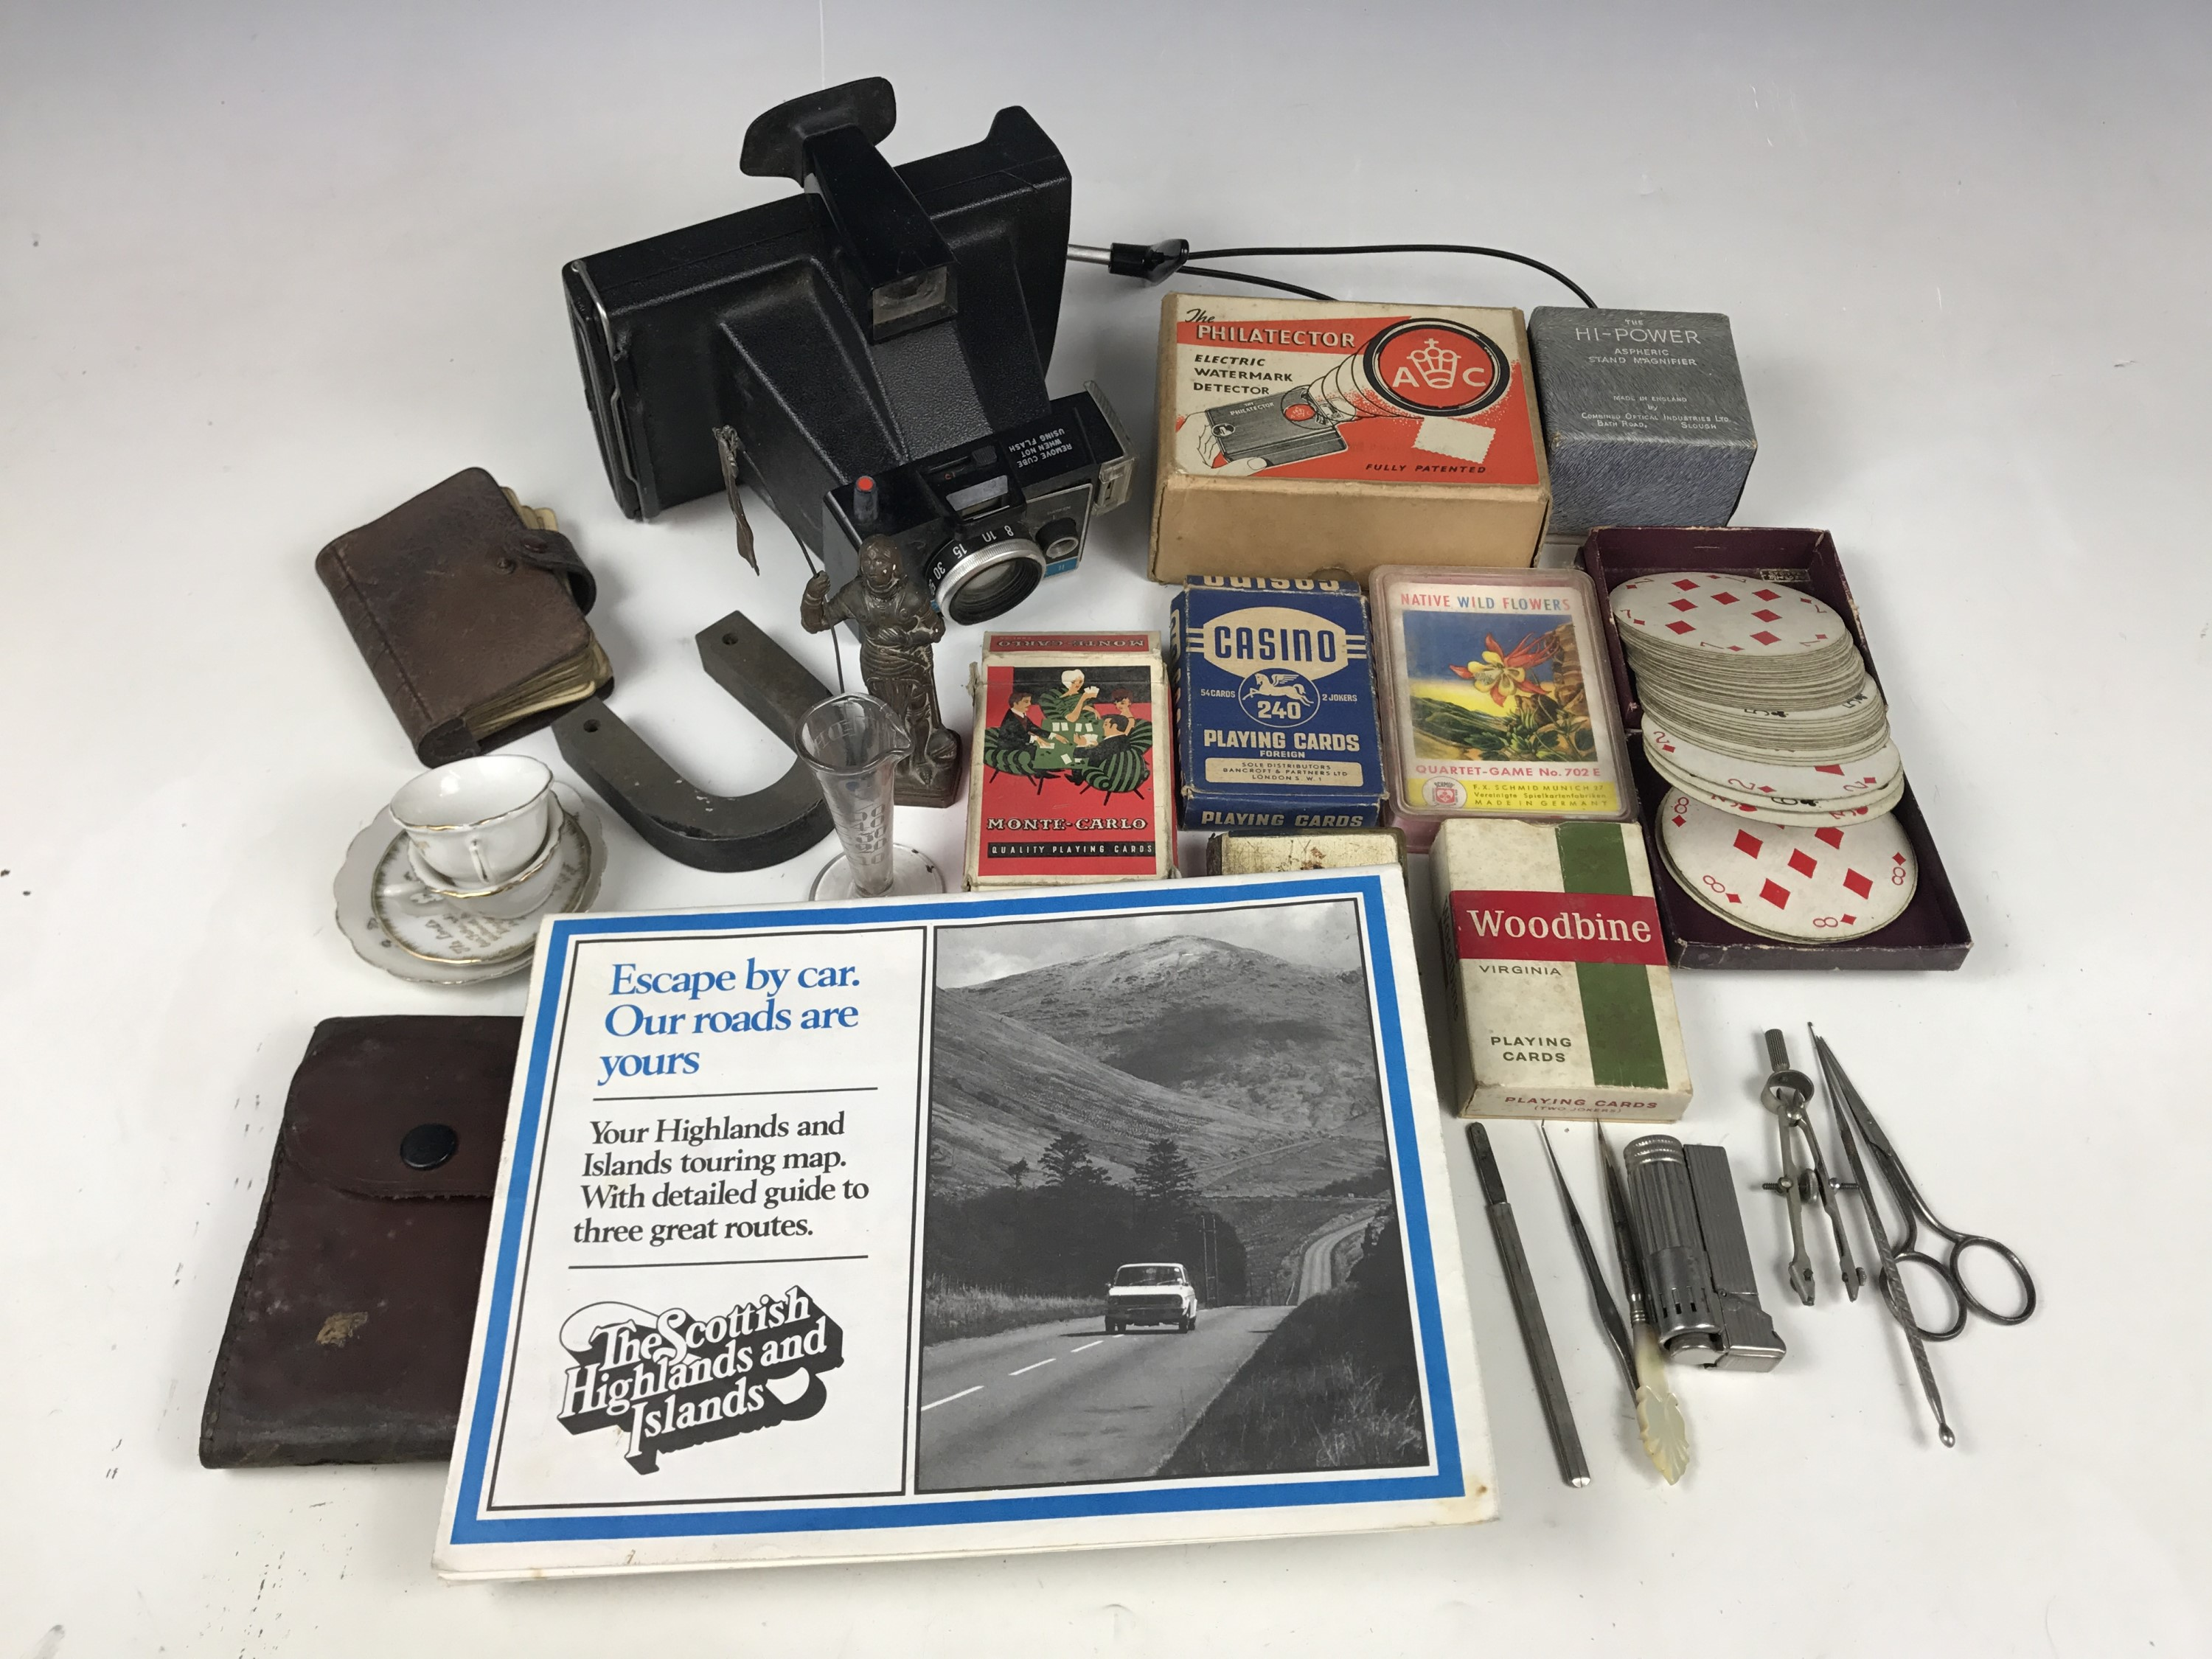 Lot 9 - Sundry collectors' items including a Polaroid Colorpack II land camera, maps, playing cards, a cased